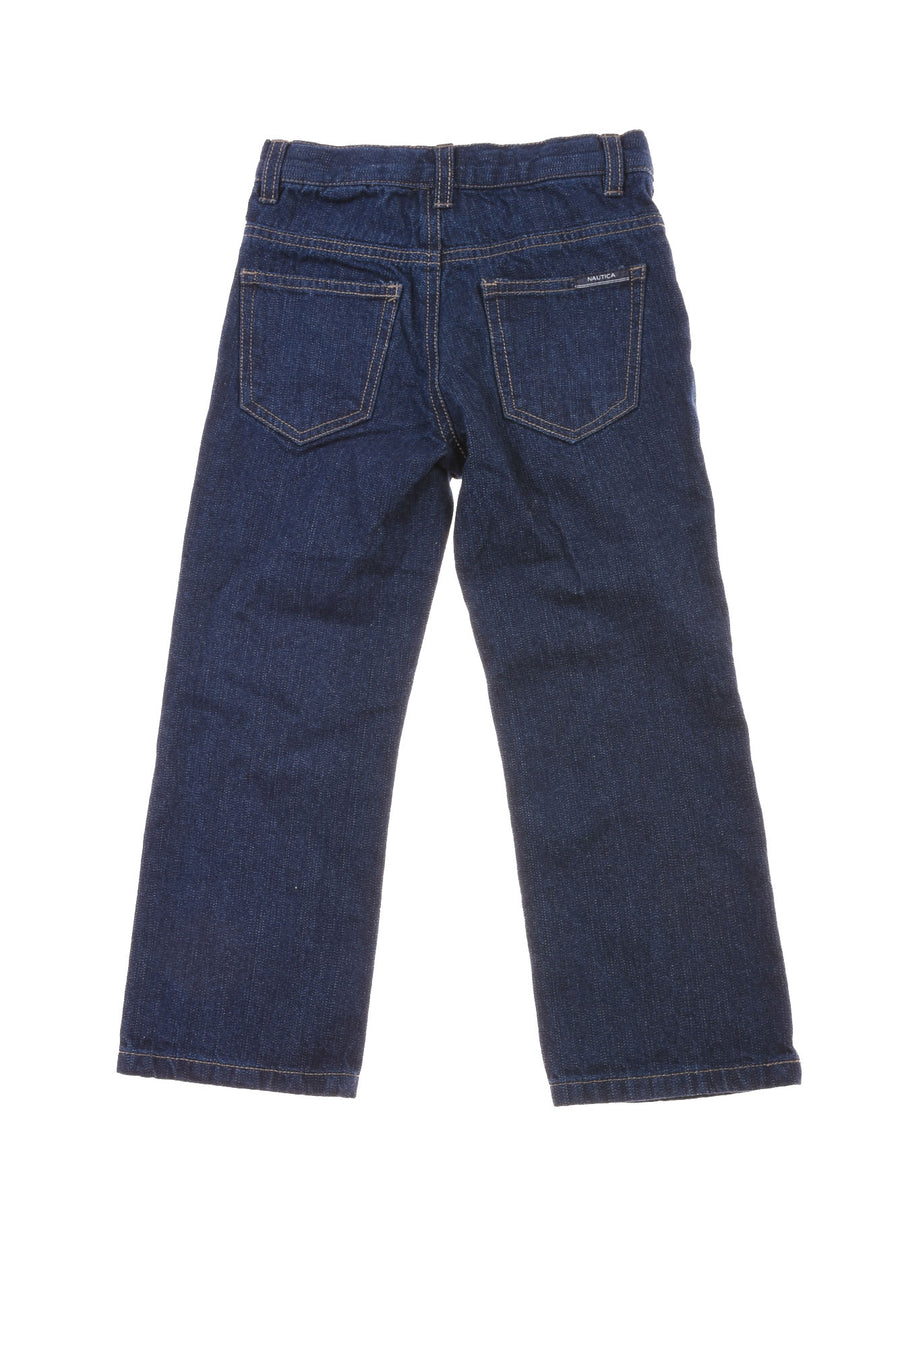 USED Nautica Toddler Boy's Pants 4T Blue